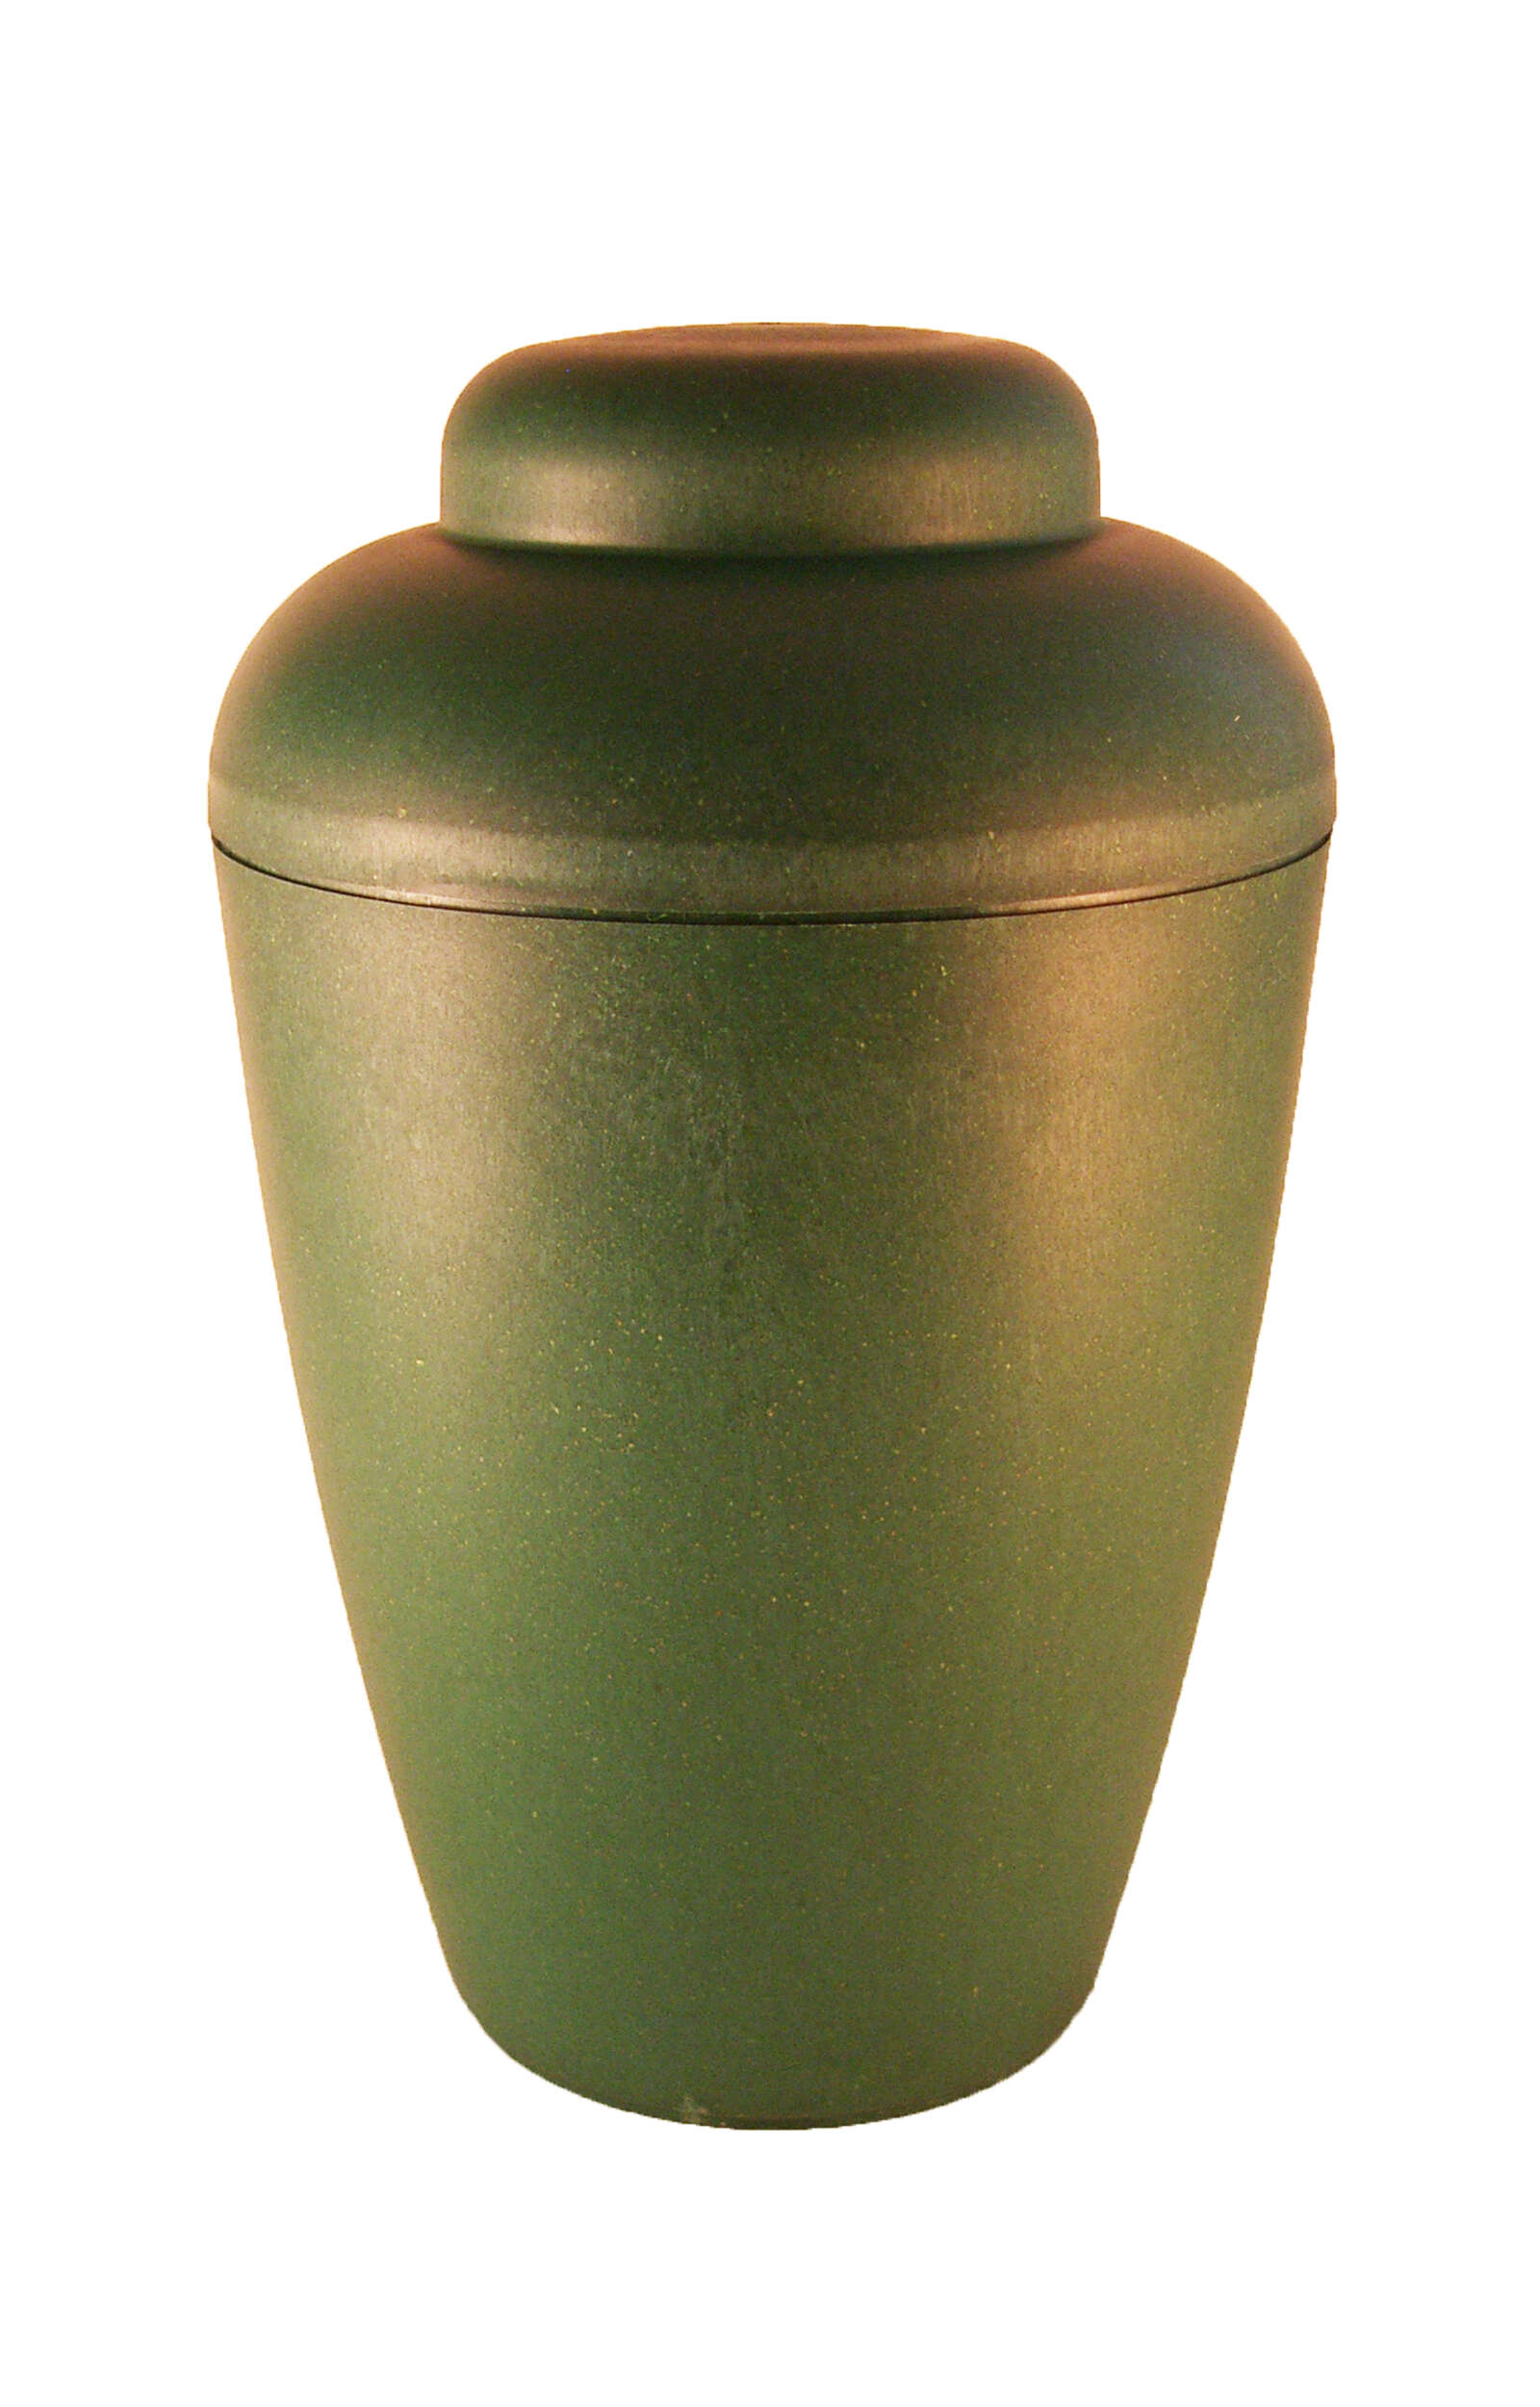 en BVG1405 biodigradable urn green elegant shape vale funeral urns for human ashes